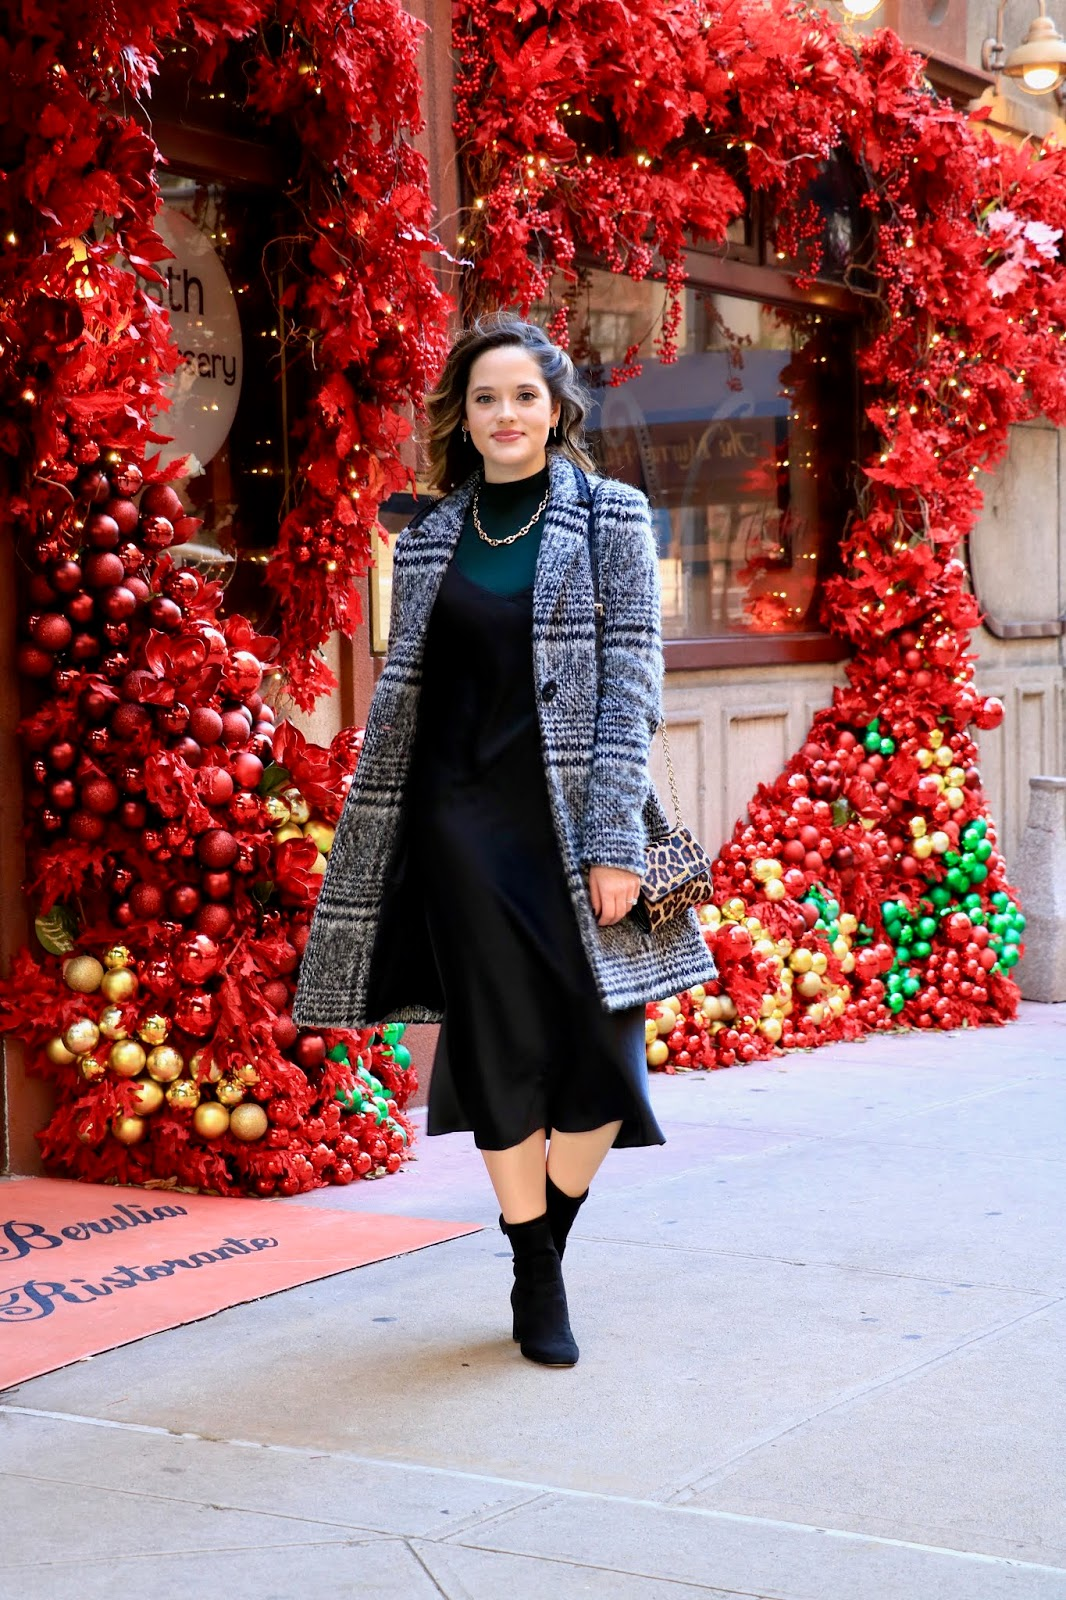 Nyc fashion blogger Kathleen Harper wearing an office holiday party outfit in New York City.